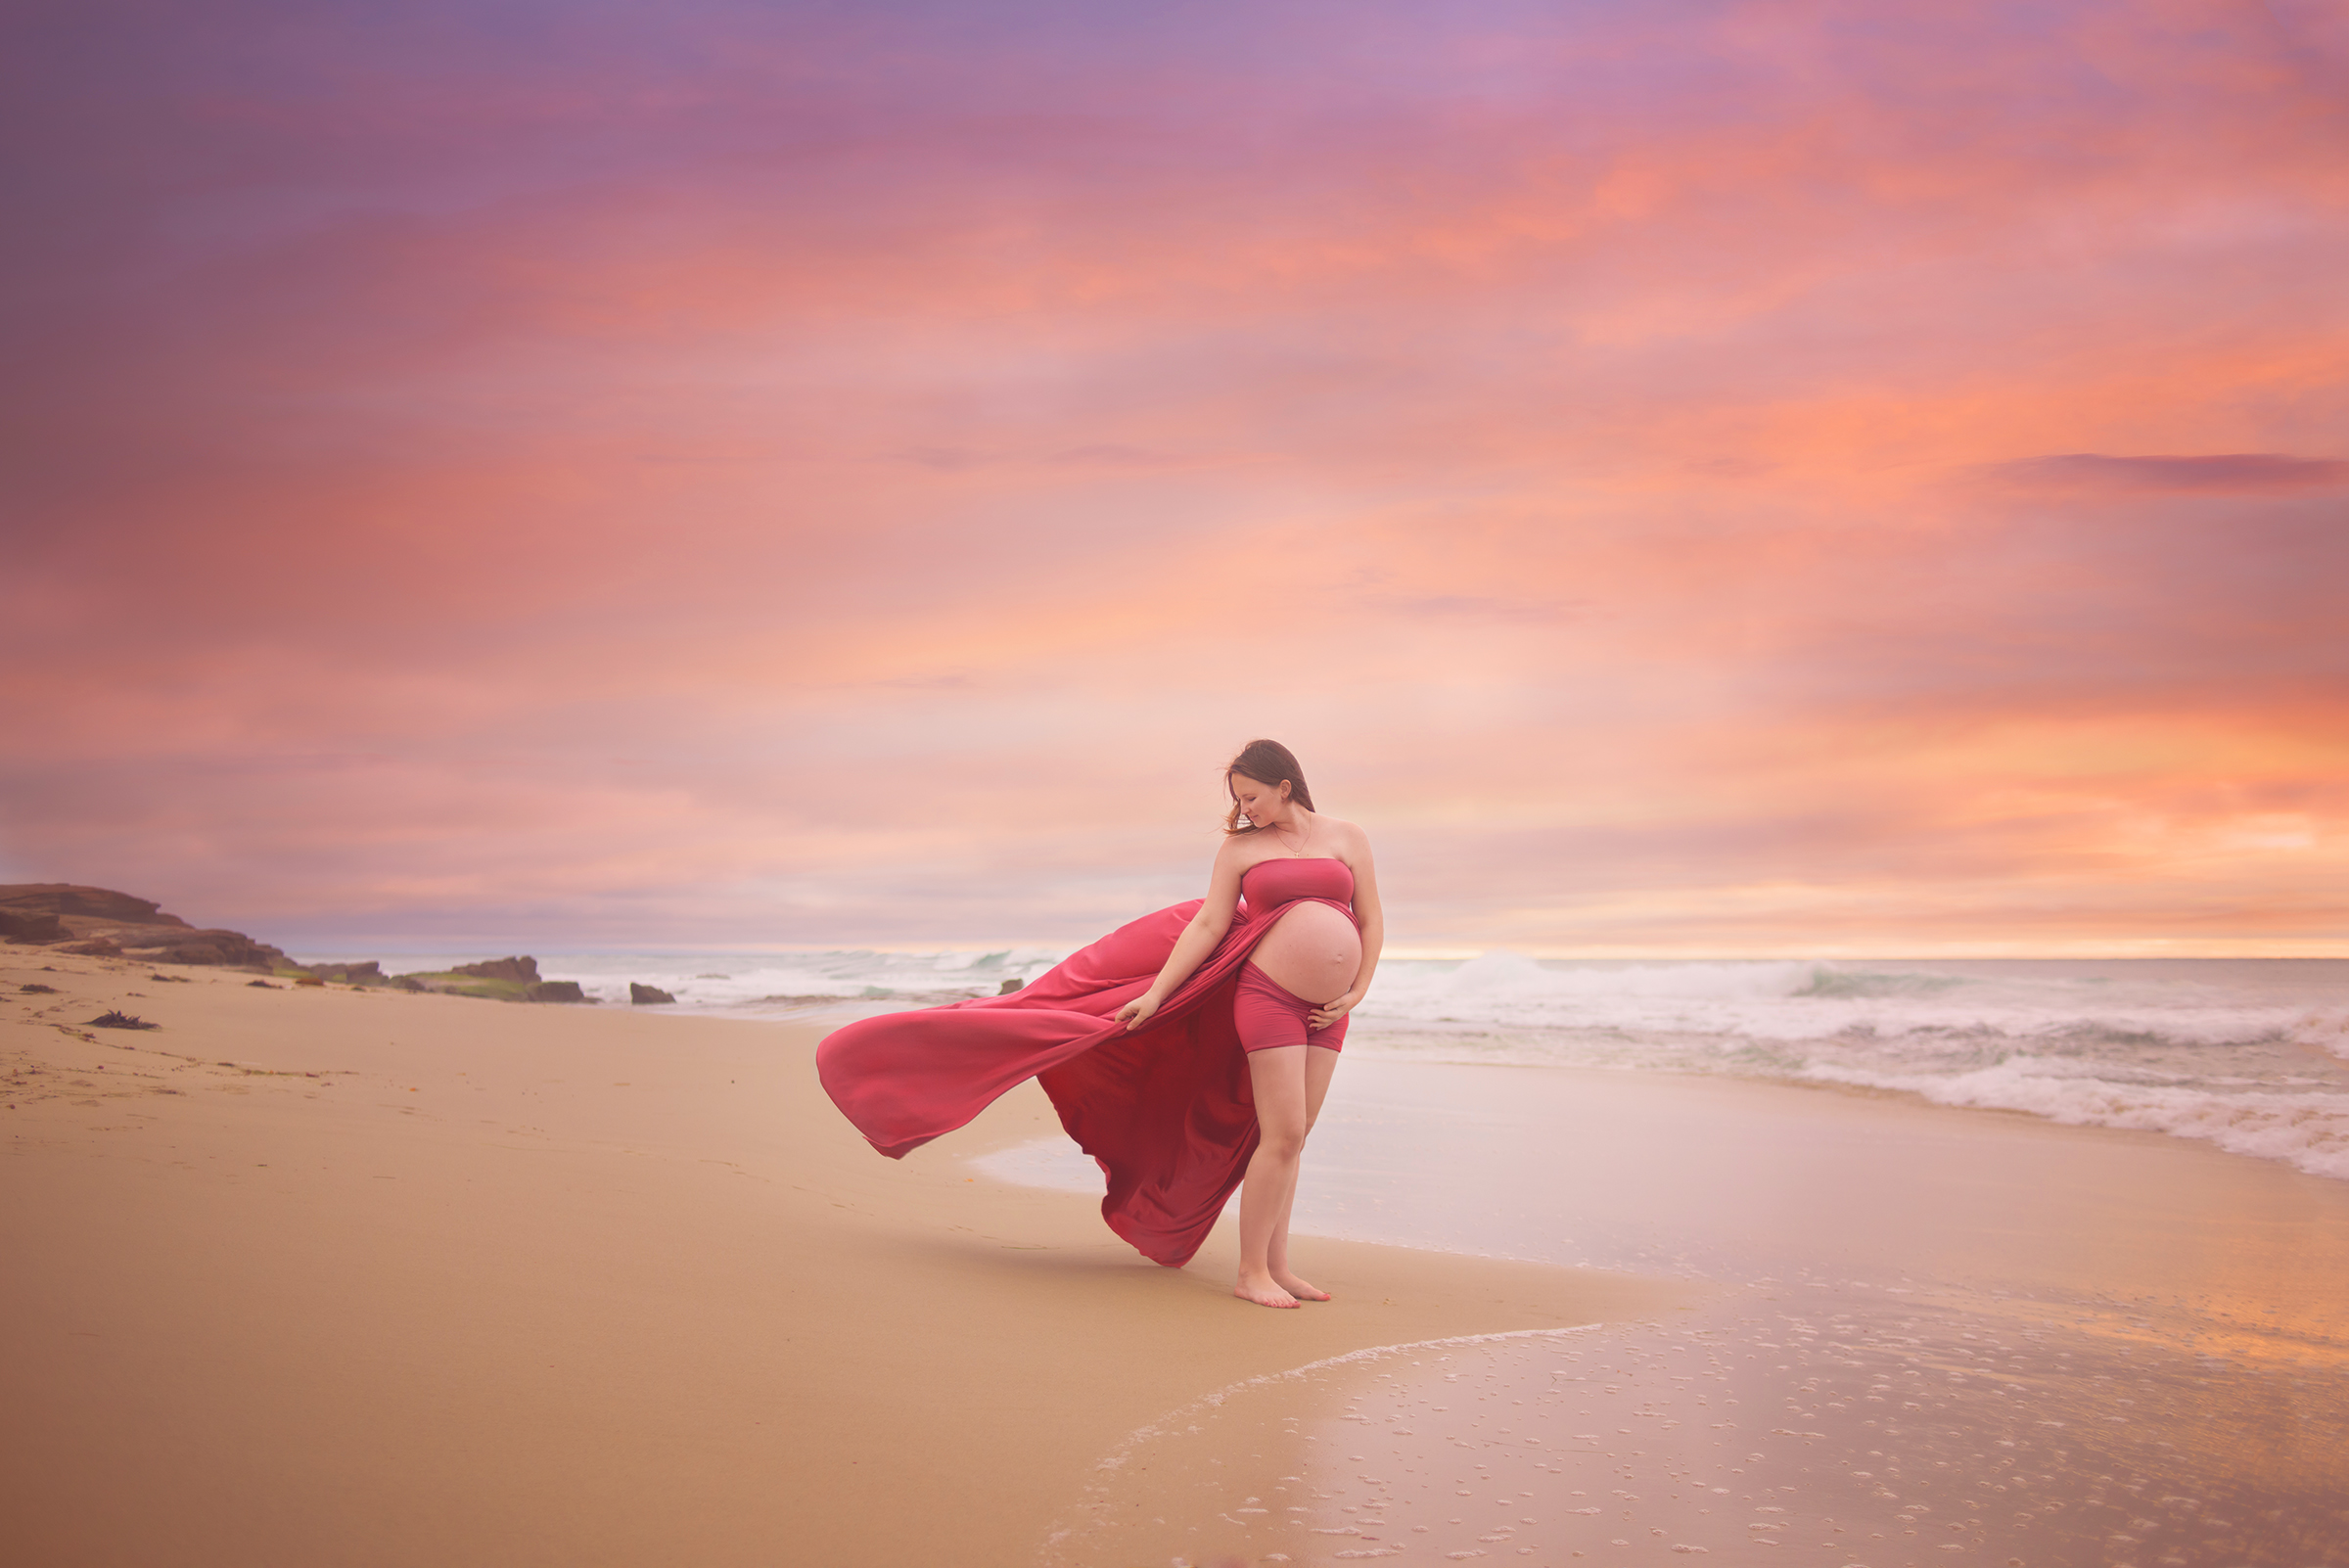 La Jolla Shores maternity and nephotographer Southern Californiawborn